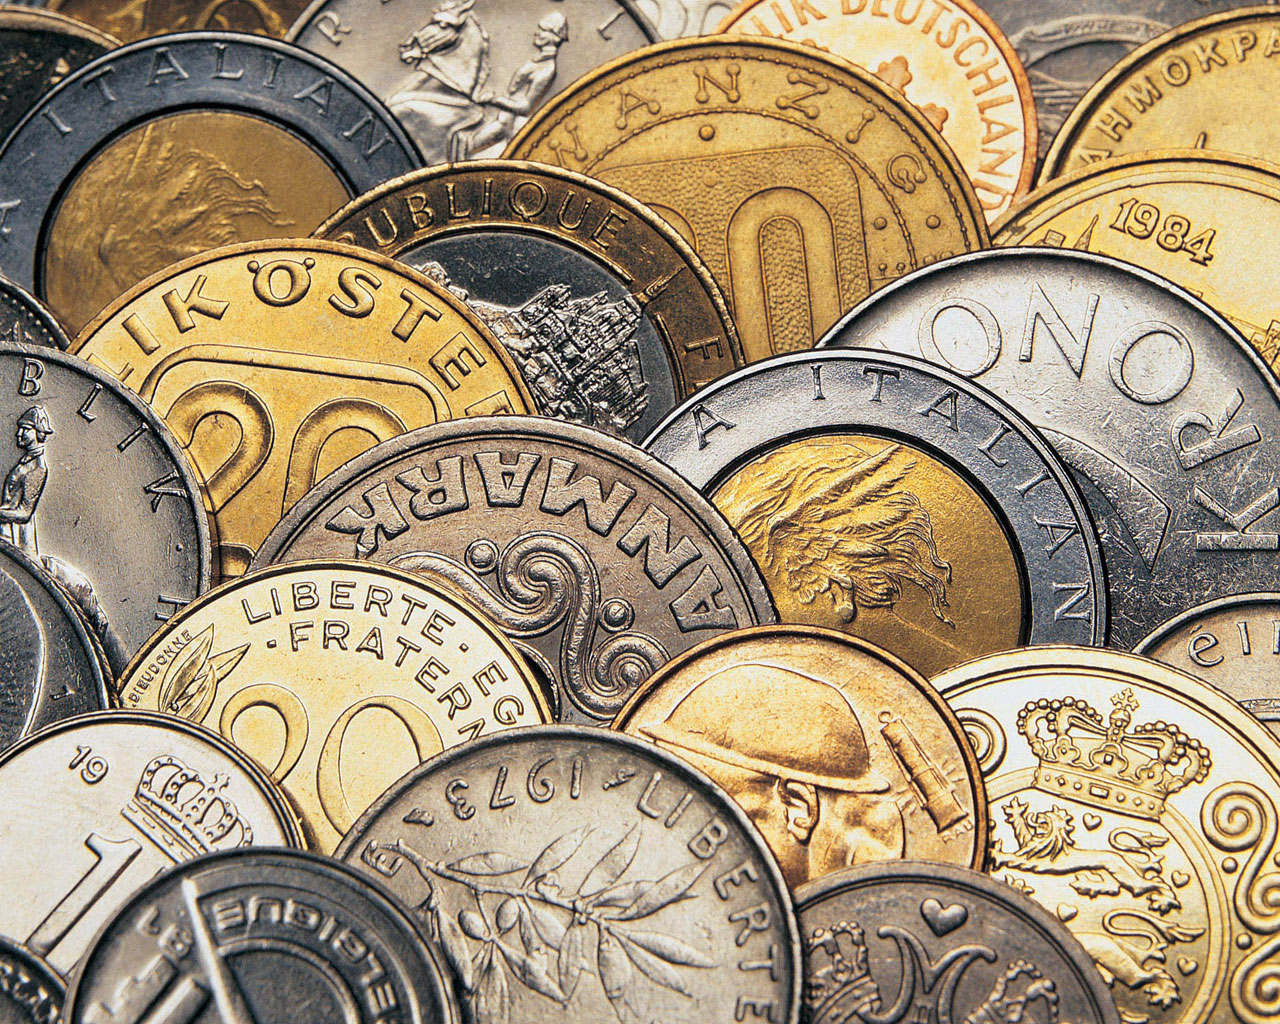 coins, texture, download photo, coins texture, background, coins, money